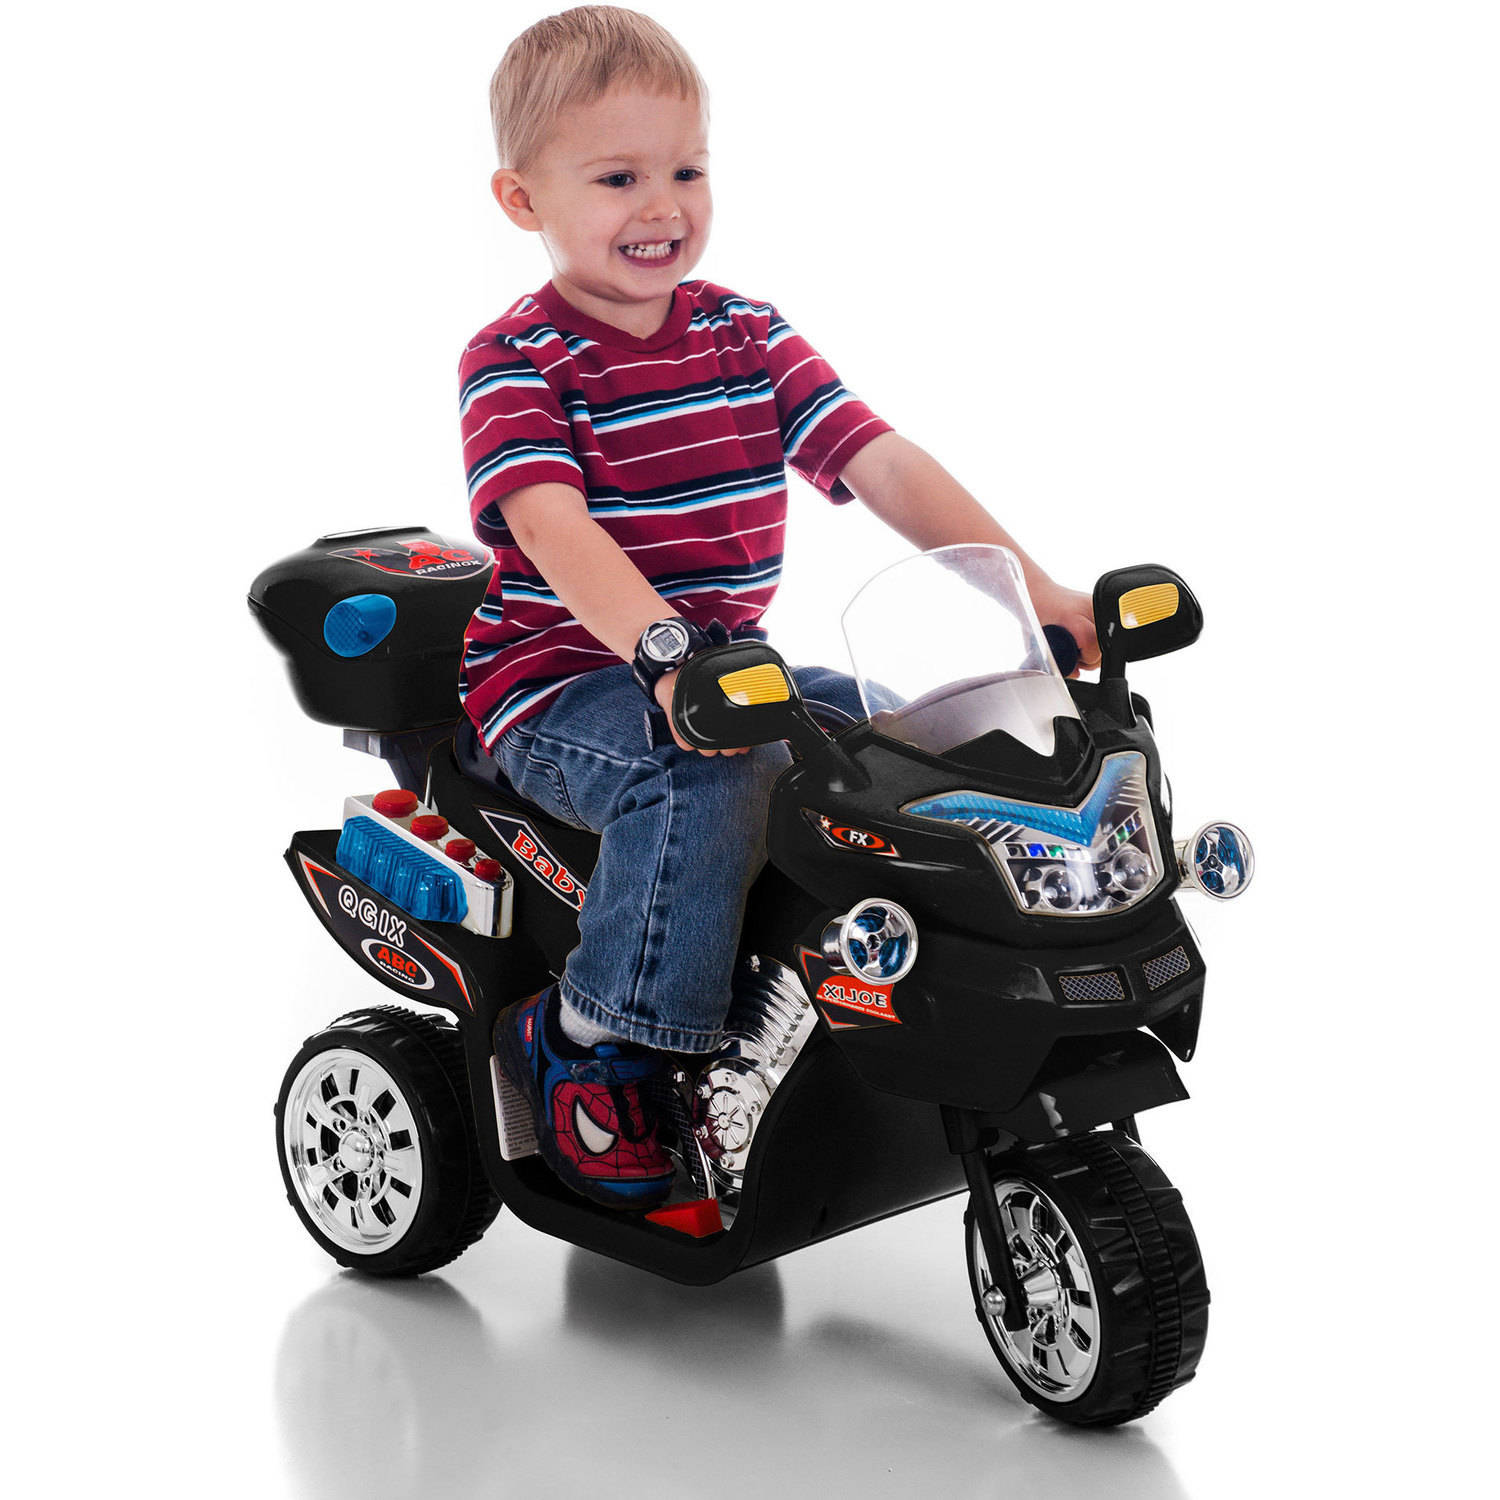 Uncategorized Kids Motorcycle 3 wheel motorcycle ride on toy for kids by rockin rollers battery powered toys boys and girls 2 5 year old